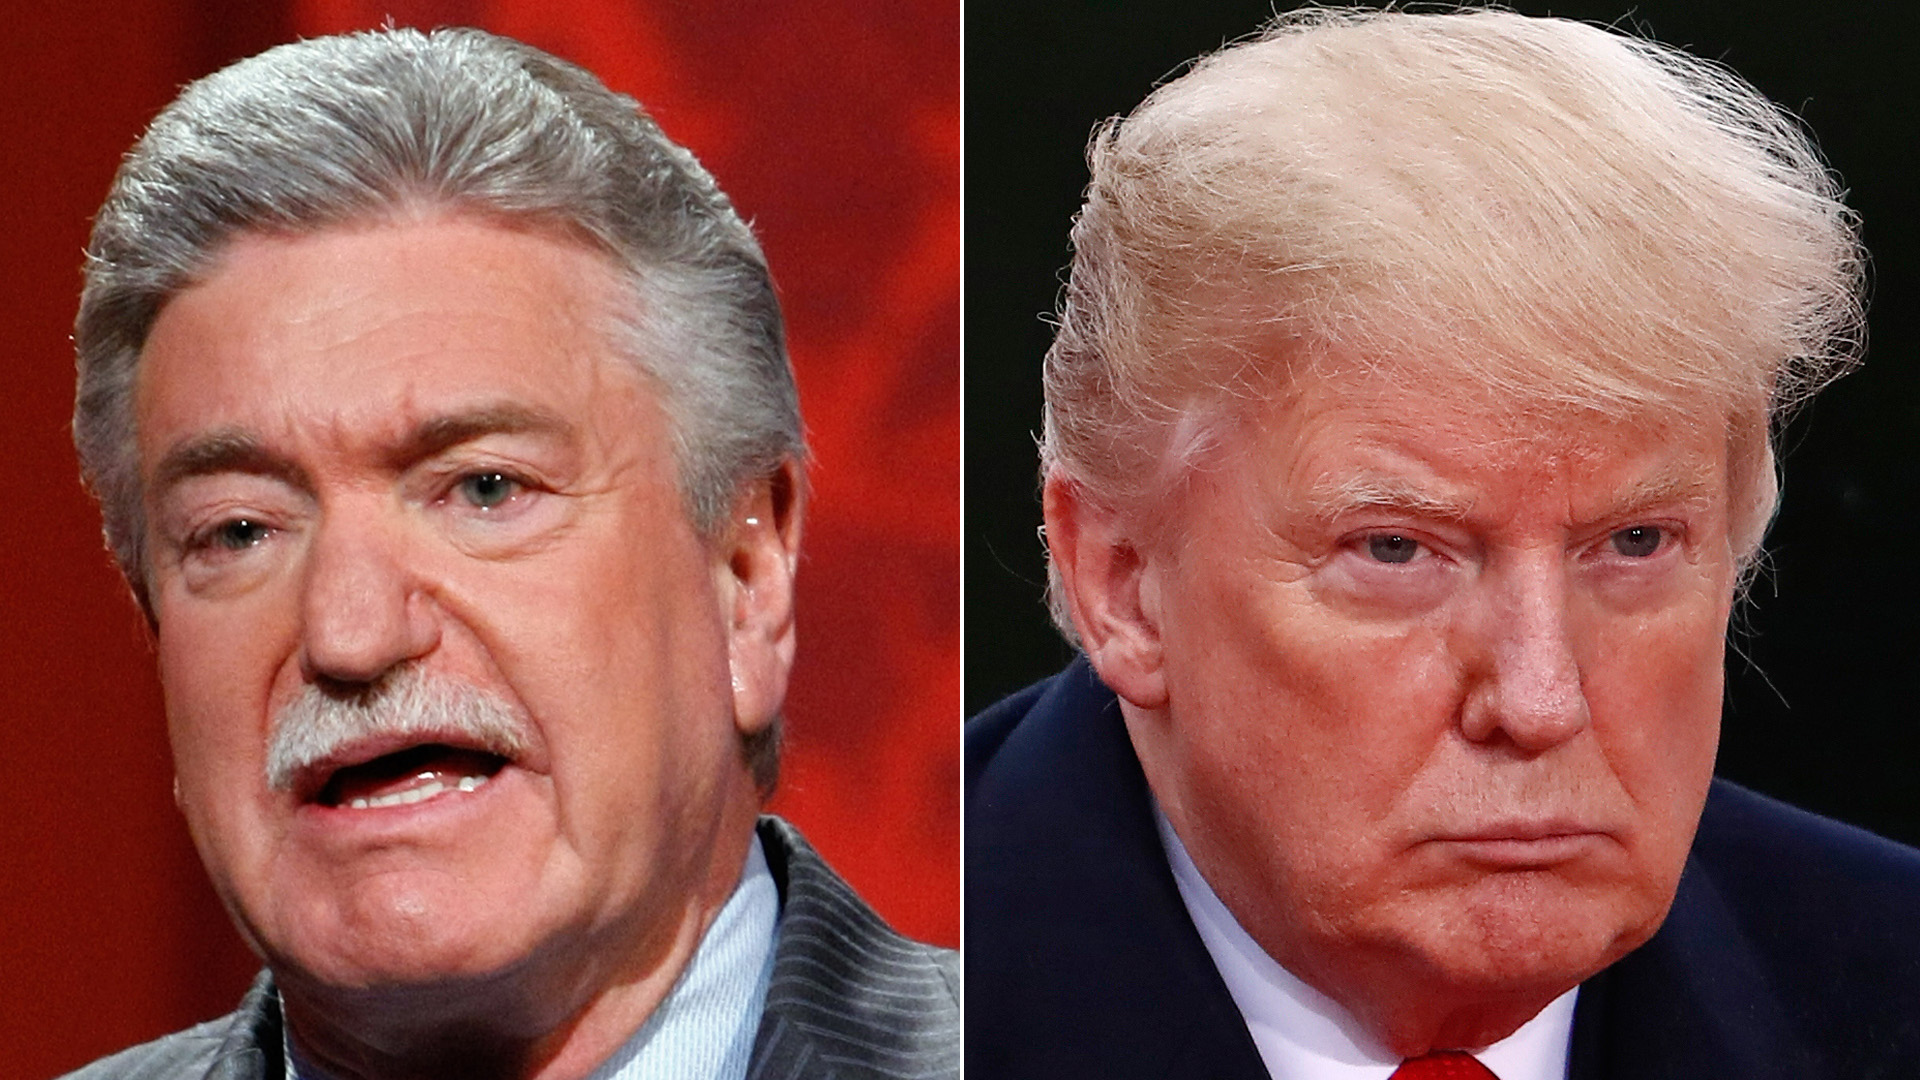 Harold Schaitberger, left, speaks during the 44th annual Labor Day Telethon at the South Point Hotel and Casino on Sept. 6, 2009 in Las Vegas, Nevada. Donald Trump, right, visits the American Cemetery of Suresnes, outside Paris, on Nov. 11, 2018. (Credit: Ethan Miller/Getty Images;CHRISTIAN HARTMANN/AFP/Getty Images)